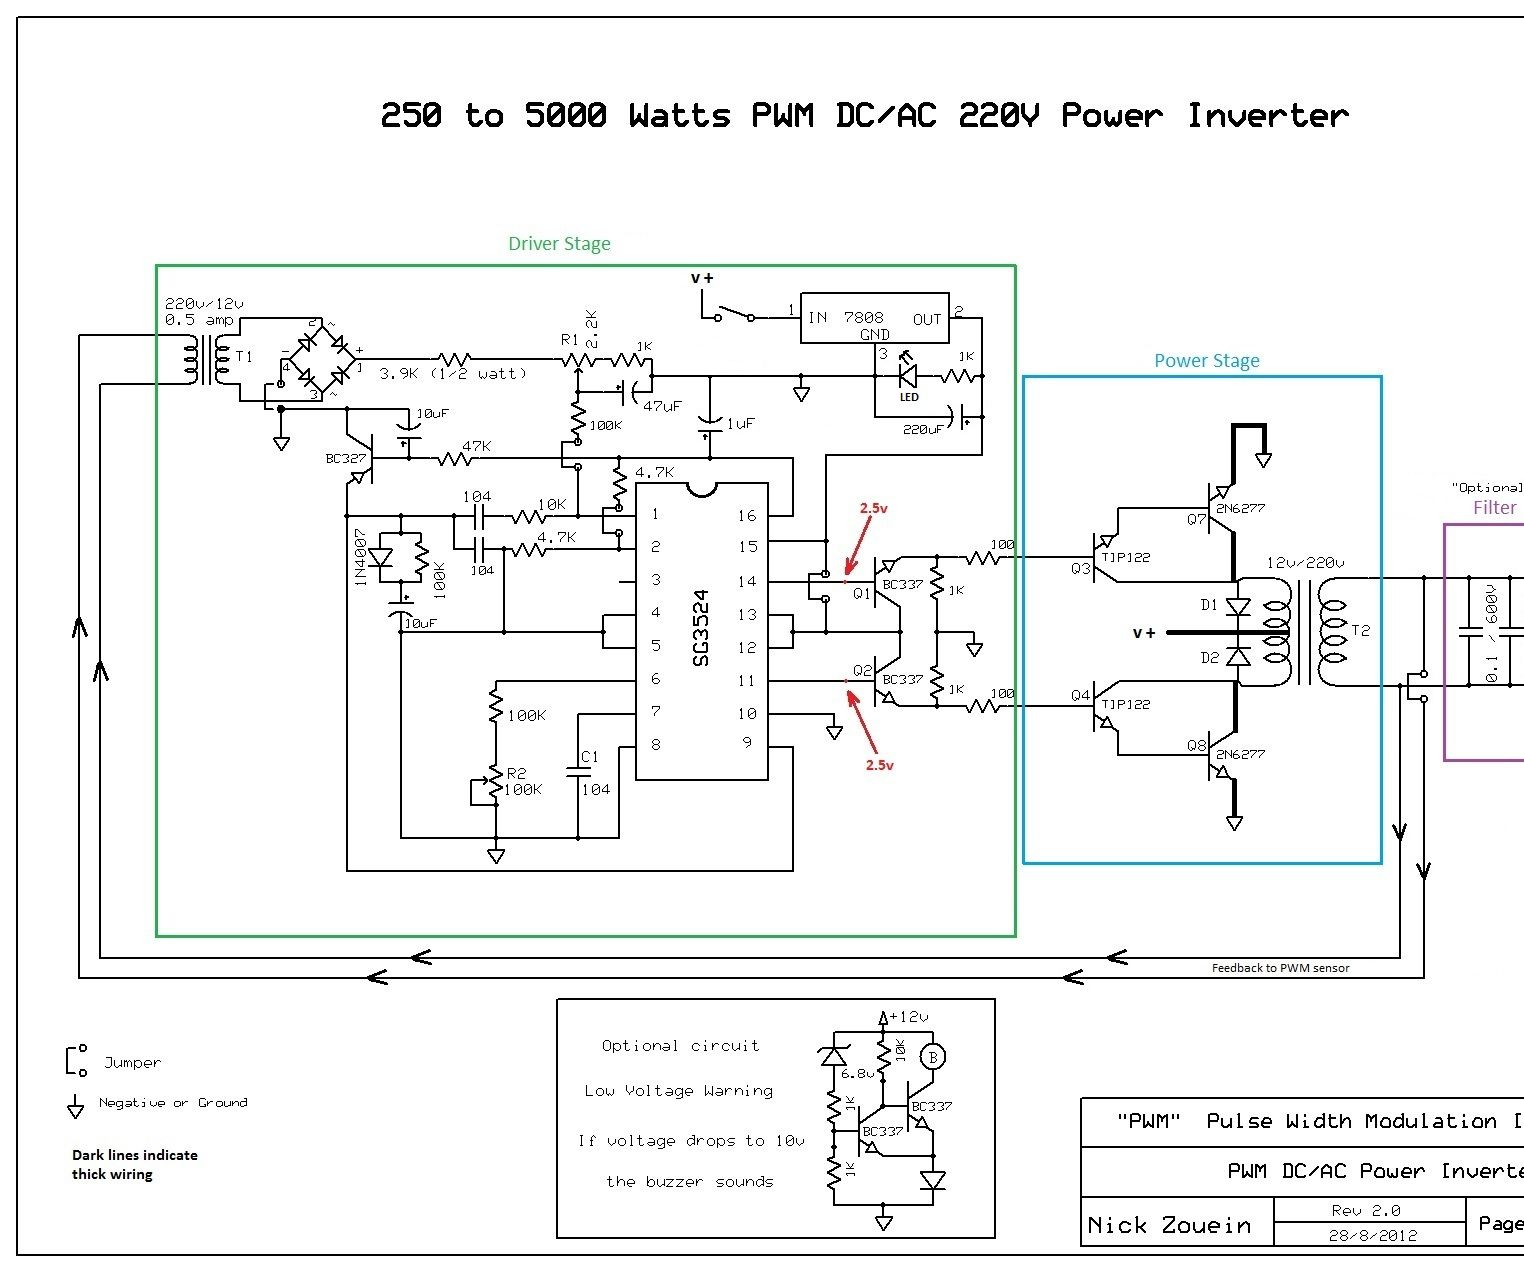 small resolution of 48v to 12v dc to dc converter circuit on pc schematic bridge diagram 250 to 5000